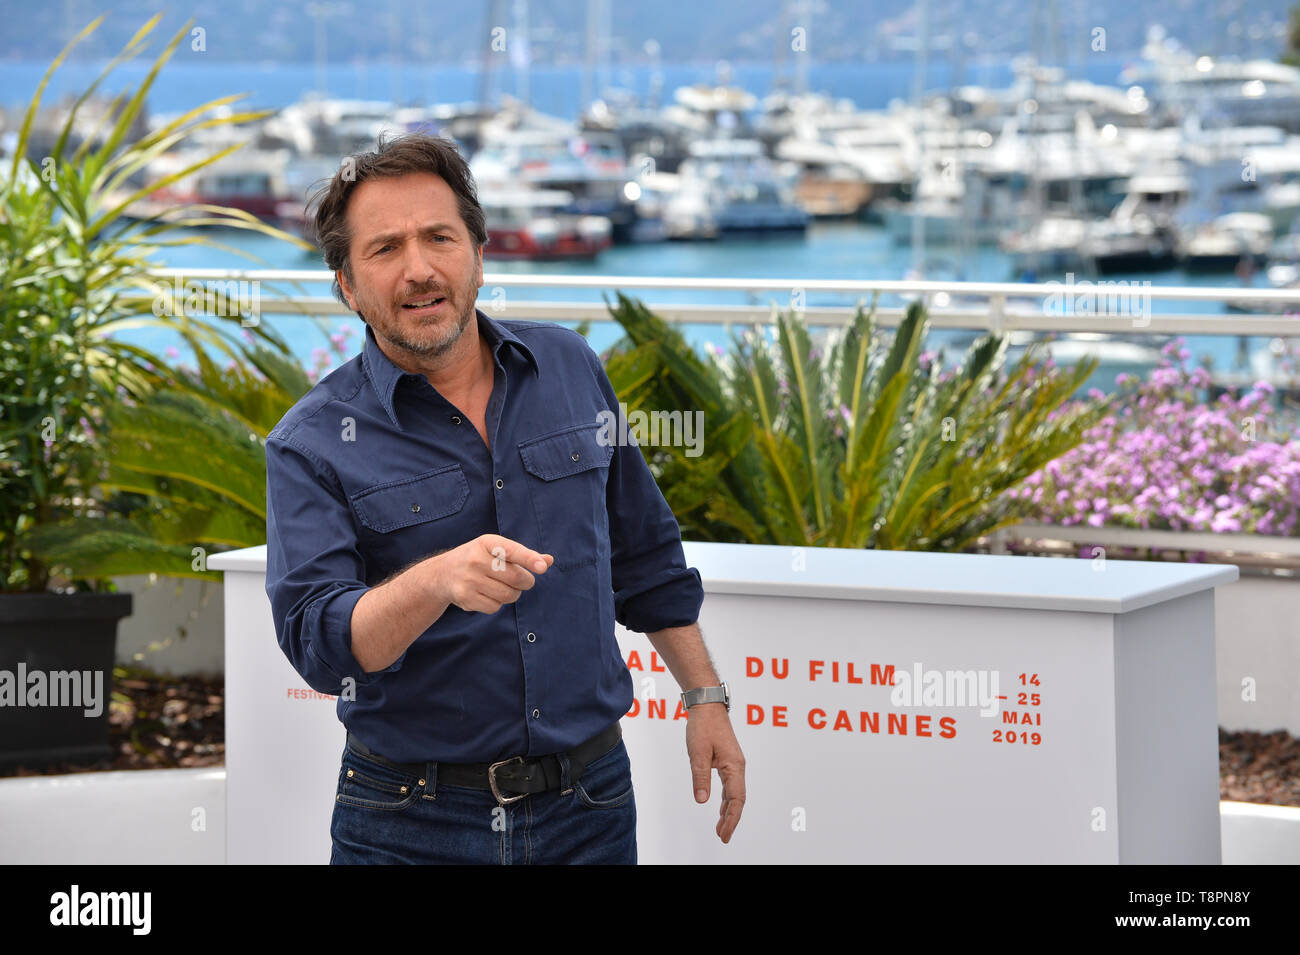 Cannes, France. 14th May, 2019. Edouard Baer at the photocall for Master of Ceremonies at the 72nd Festival de Cannes. Credit: Paul Smith/Alamy Live News Stock Photo